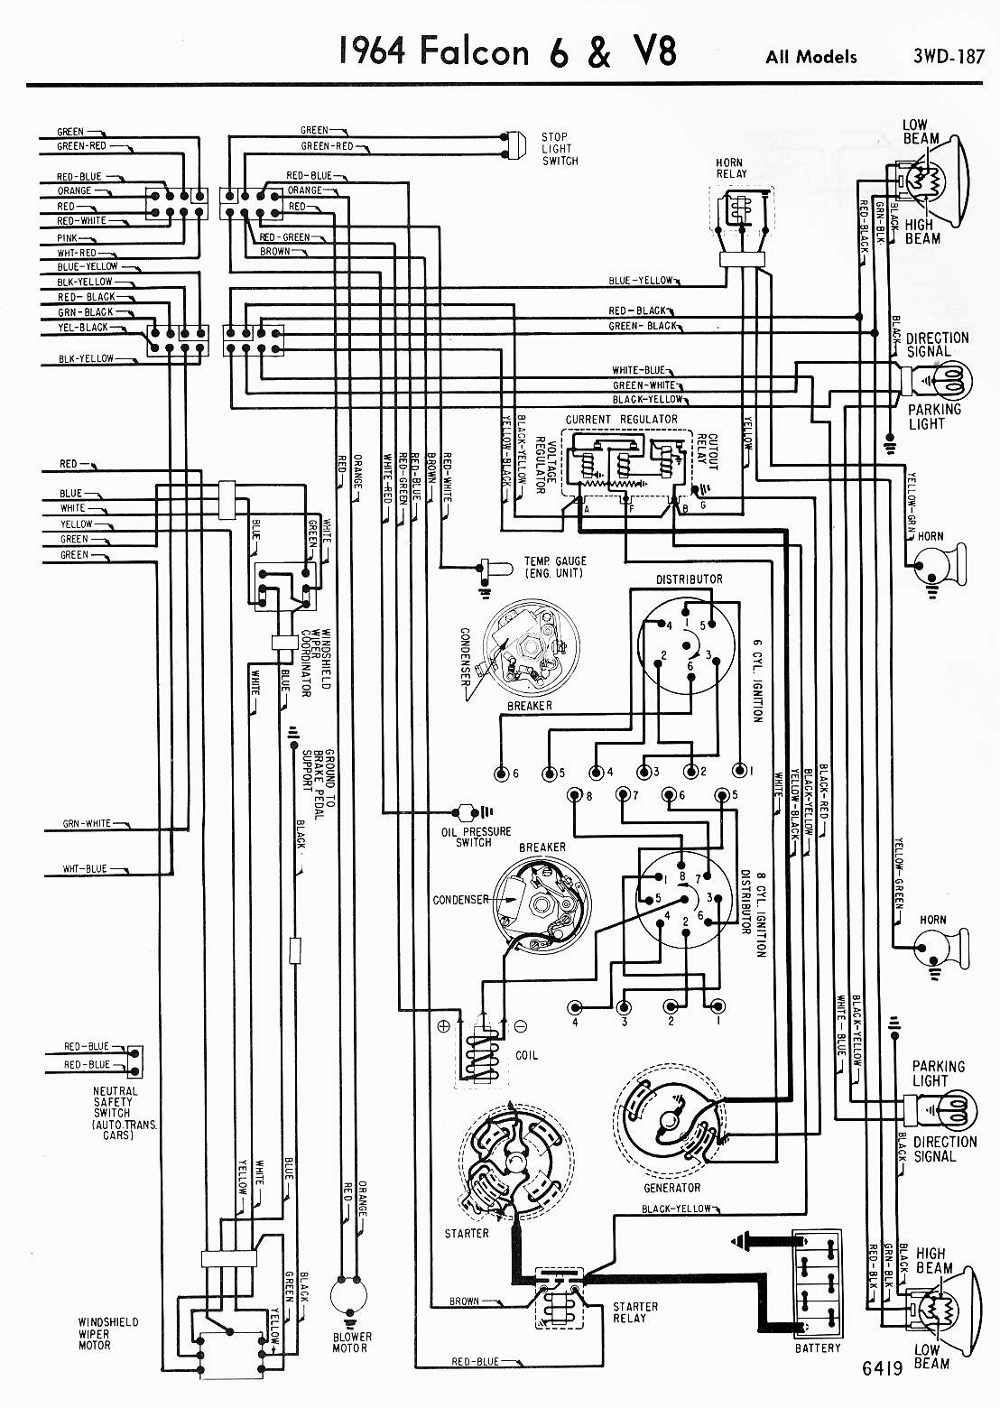 [DIAGRAM_34OR]  1964 ford falcon wiring diagram | wiring diagrams of 1964 ford 6 and v8  falcon all models part 2 ... | 1964 ford falcon, Well pump pressure switch,  Well pump | 1966 Ford Falcon Wiring |  | Pinterest